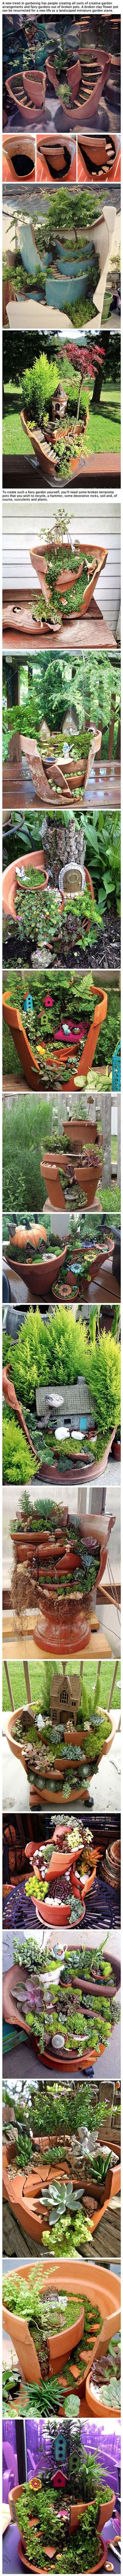 Broken Pots Turned Into Beautiful Fairy Gardens. Broken pots turned into beautiful fairy gardens. Mini garden of broken pots from Chapel Hill WedBroken black pot fairy gardenA wise woman never raises broken pots Succulents Garden, Garden Pots, Fairy Pots, Succulent Ideas, Bottle Garden, Pot Jardin, Beautiful Fairies, Beautiful Gardens, Miniature Fairy Gardens